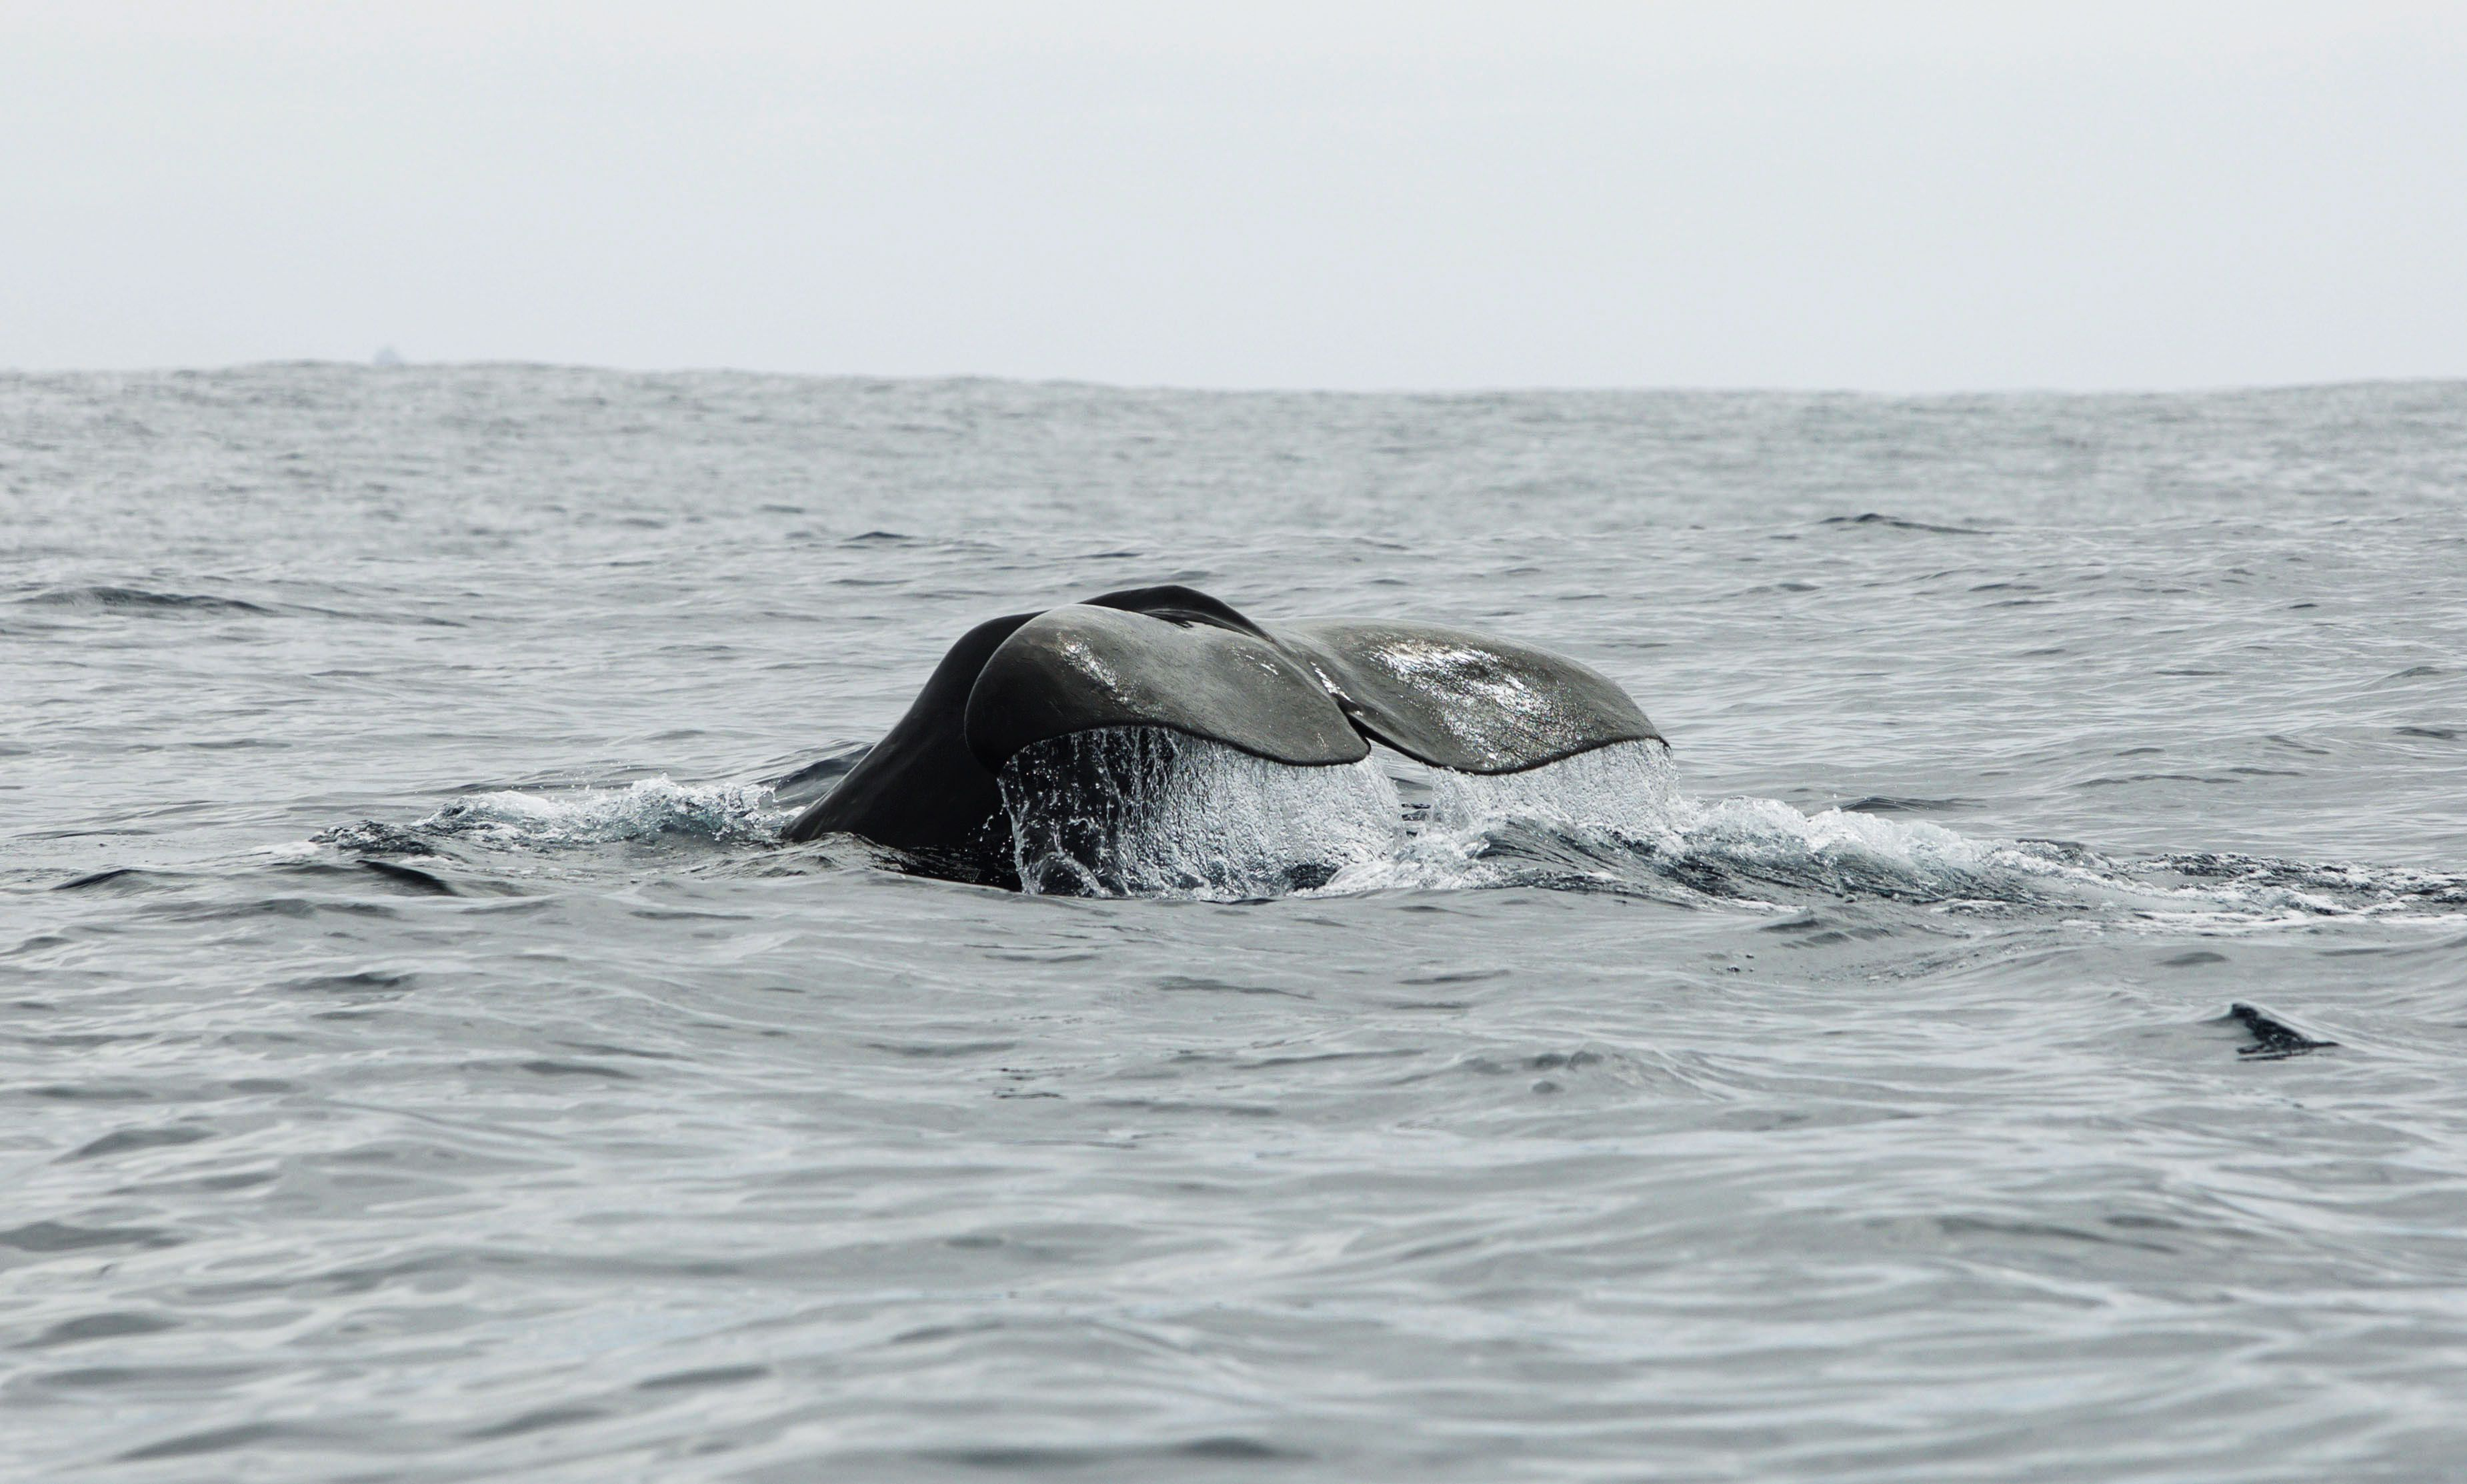 Whale tail out of the water